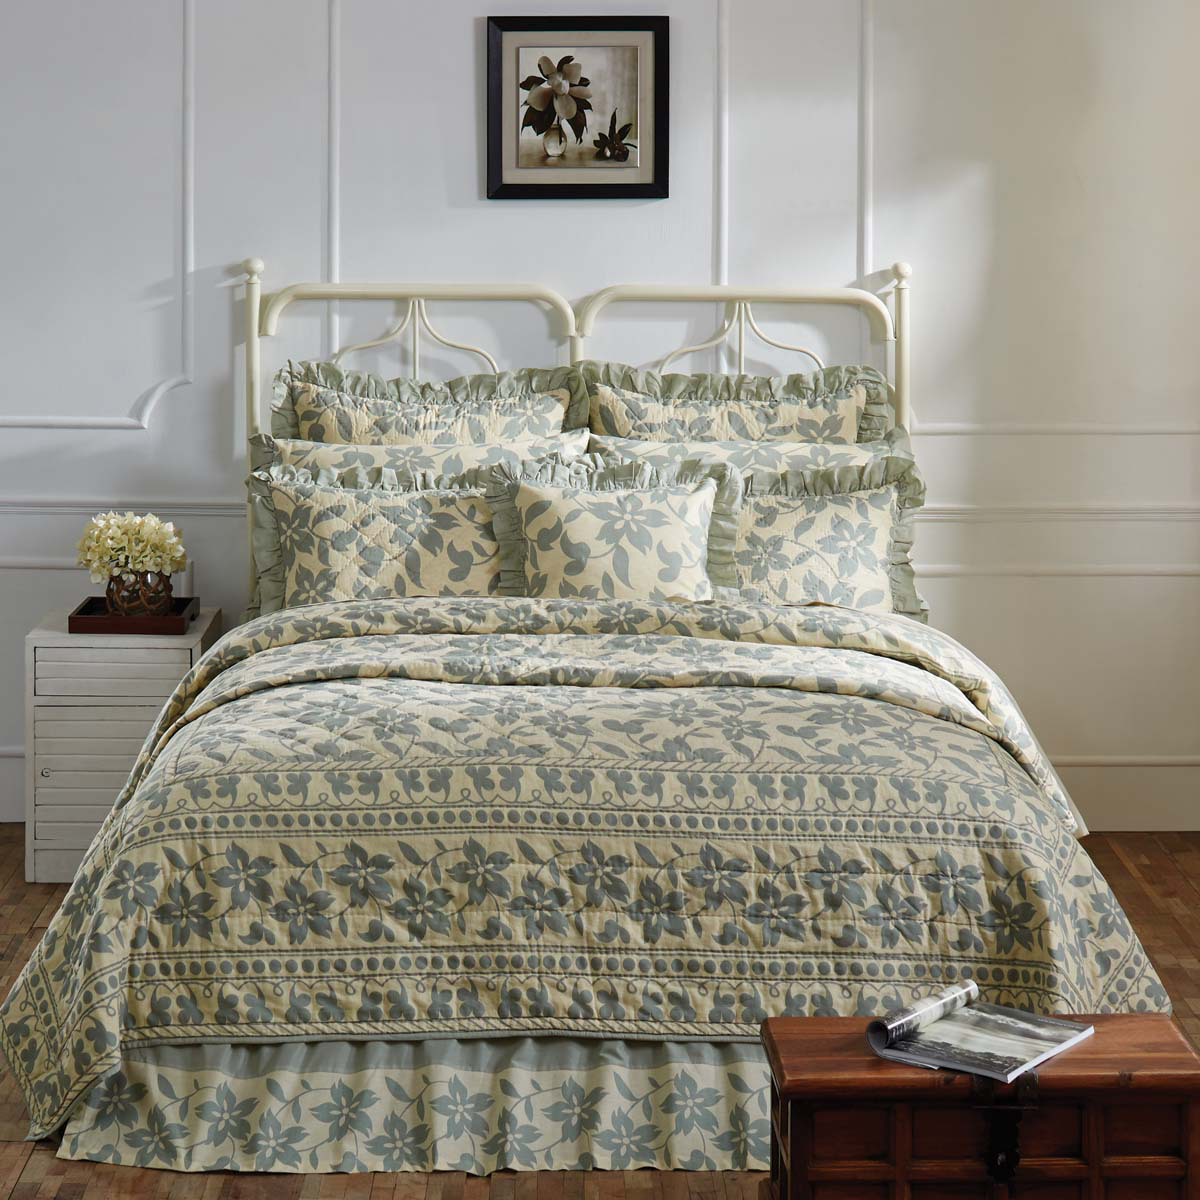 Briar Sage King Quilt Set - 9 Pieces - Sale Priced - $50 Off - Vhc Brands